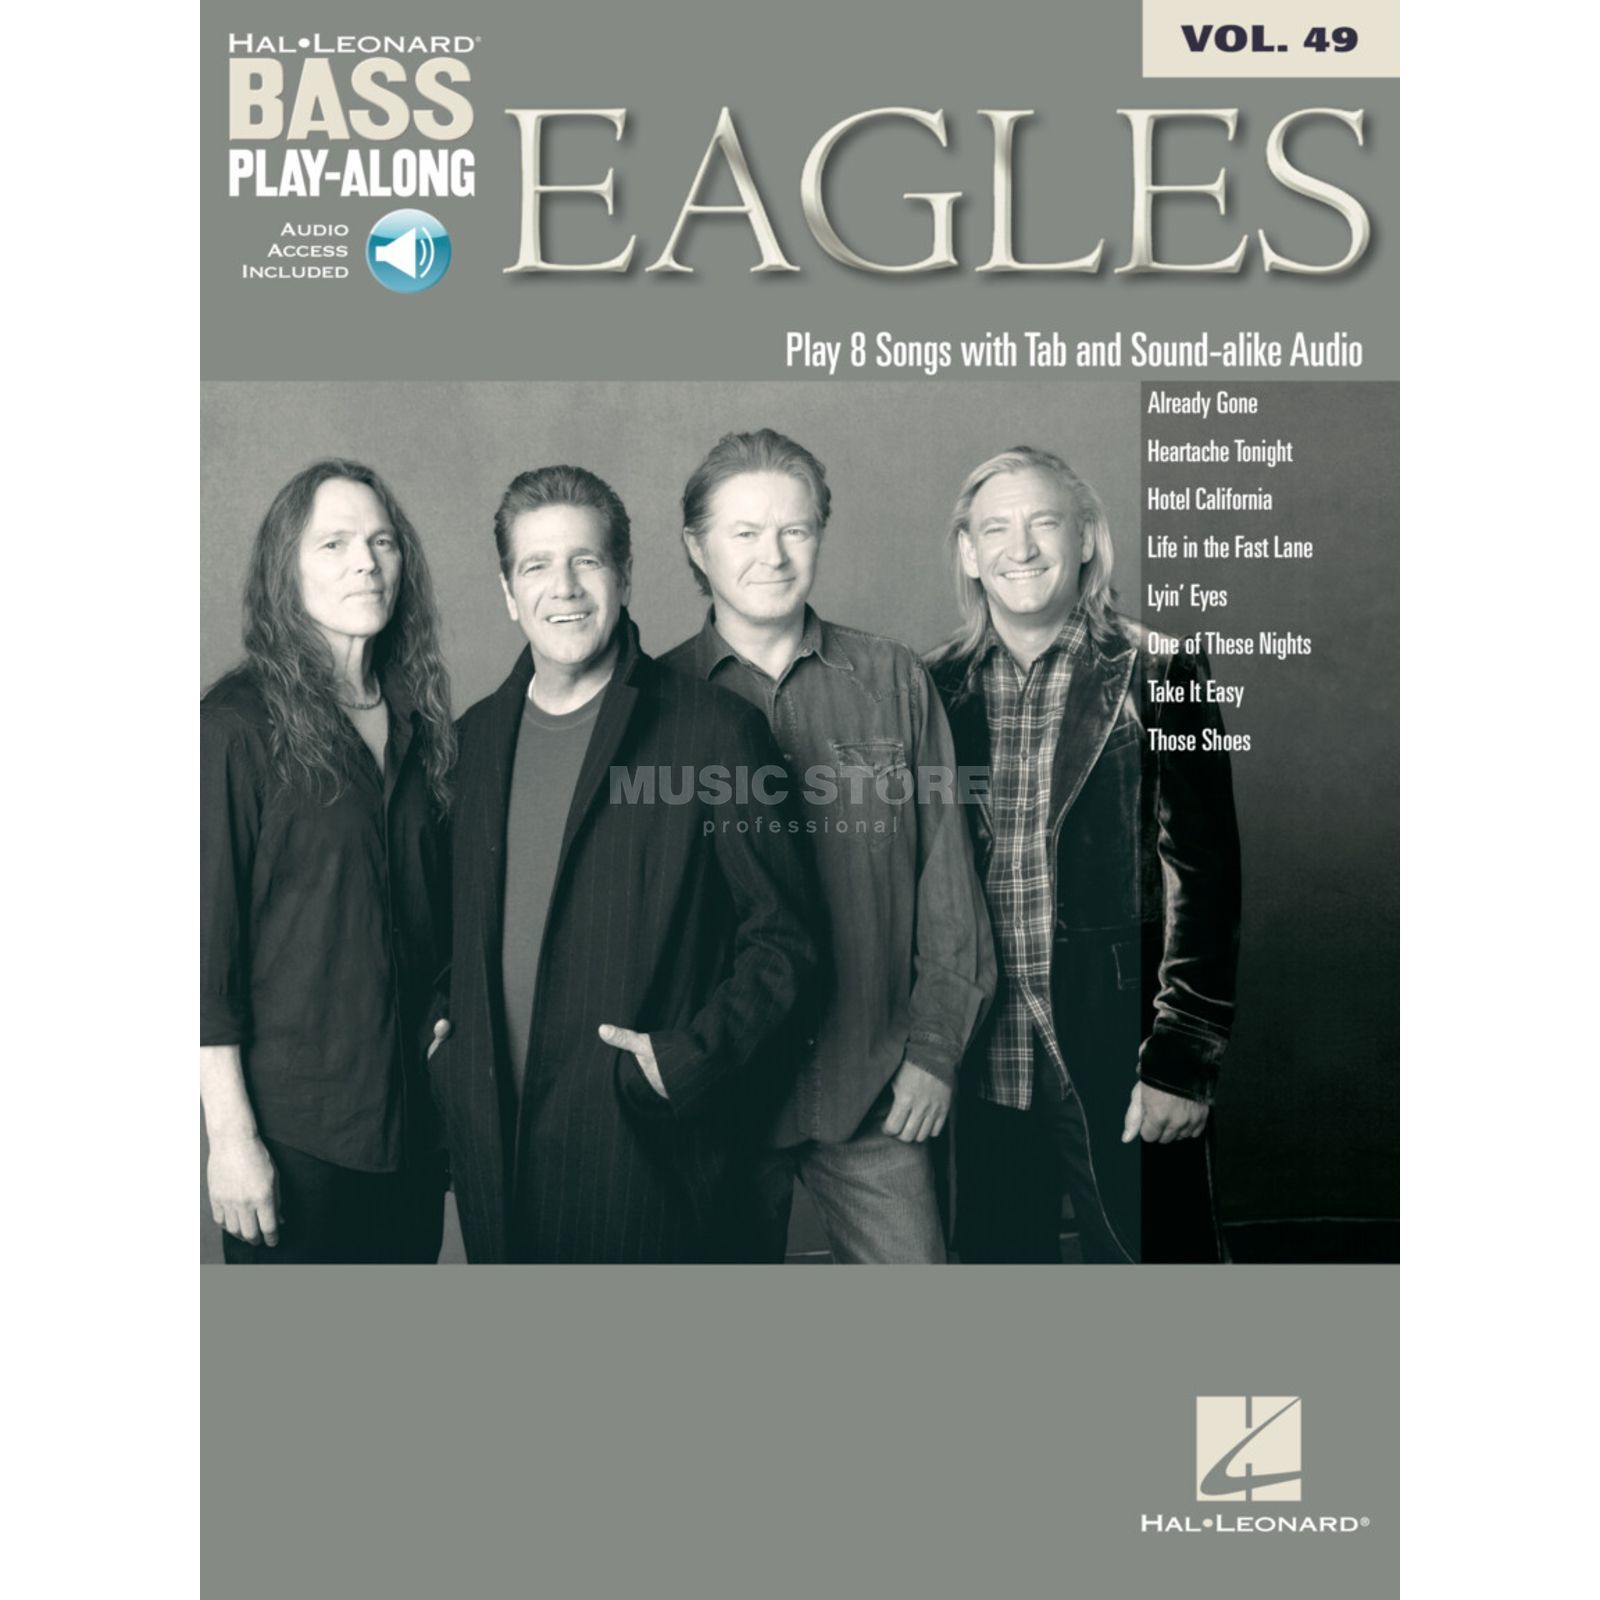 Hal Leonard Bass Play-Along - Eagles Vol. 49, Bass TAB Produktbillede